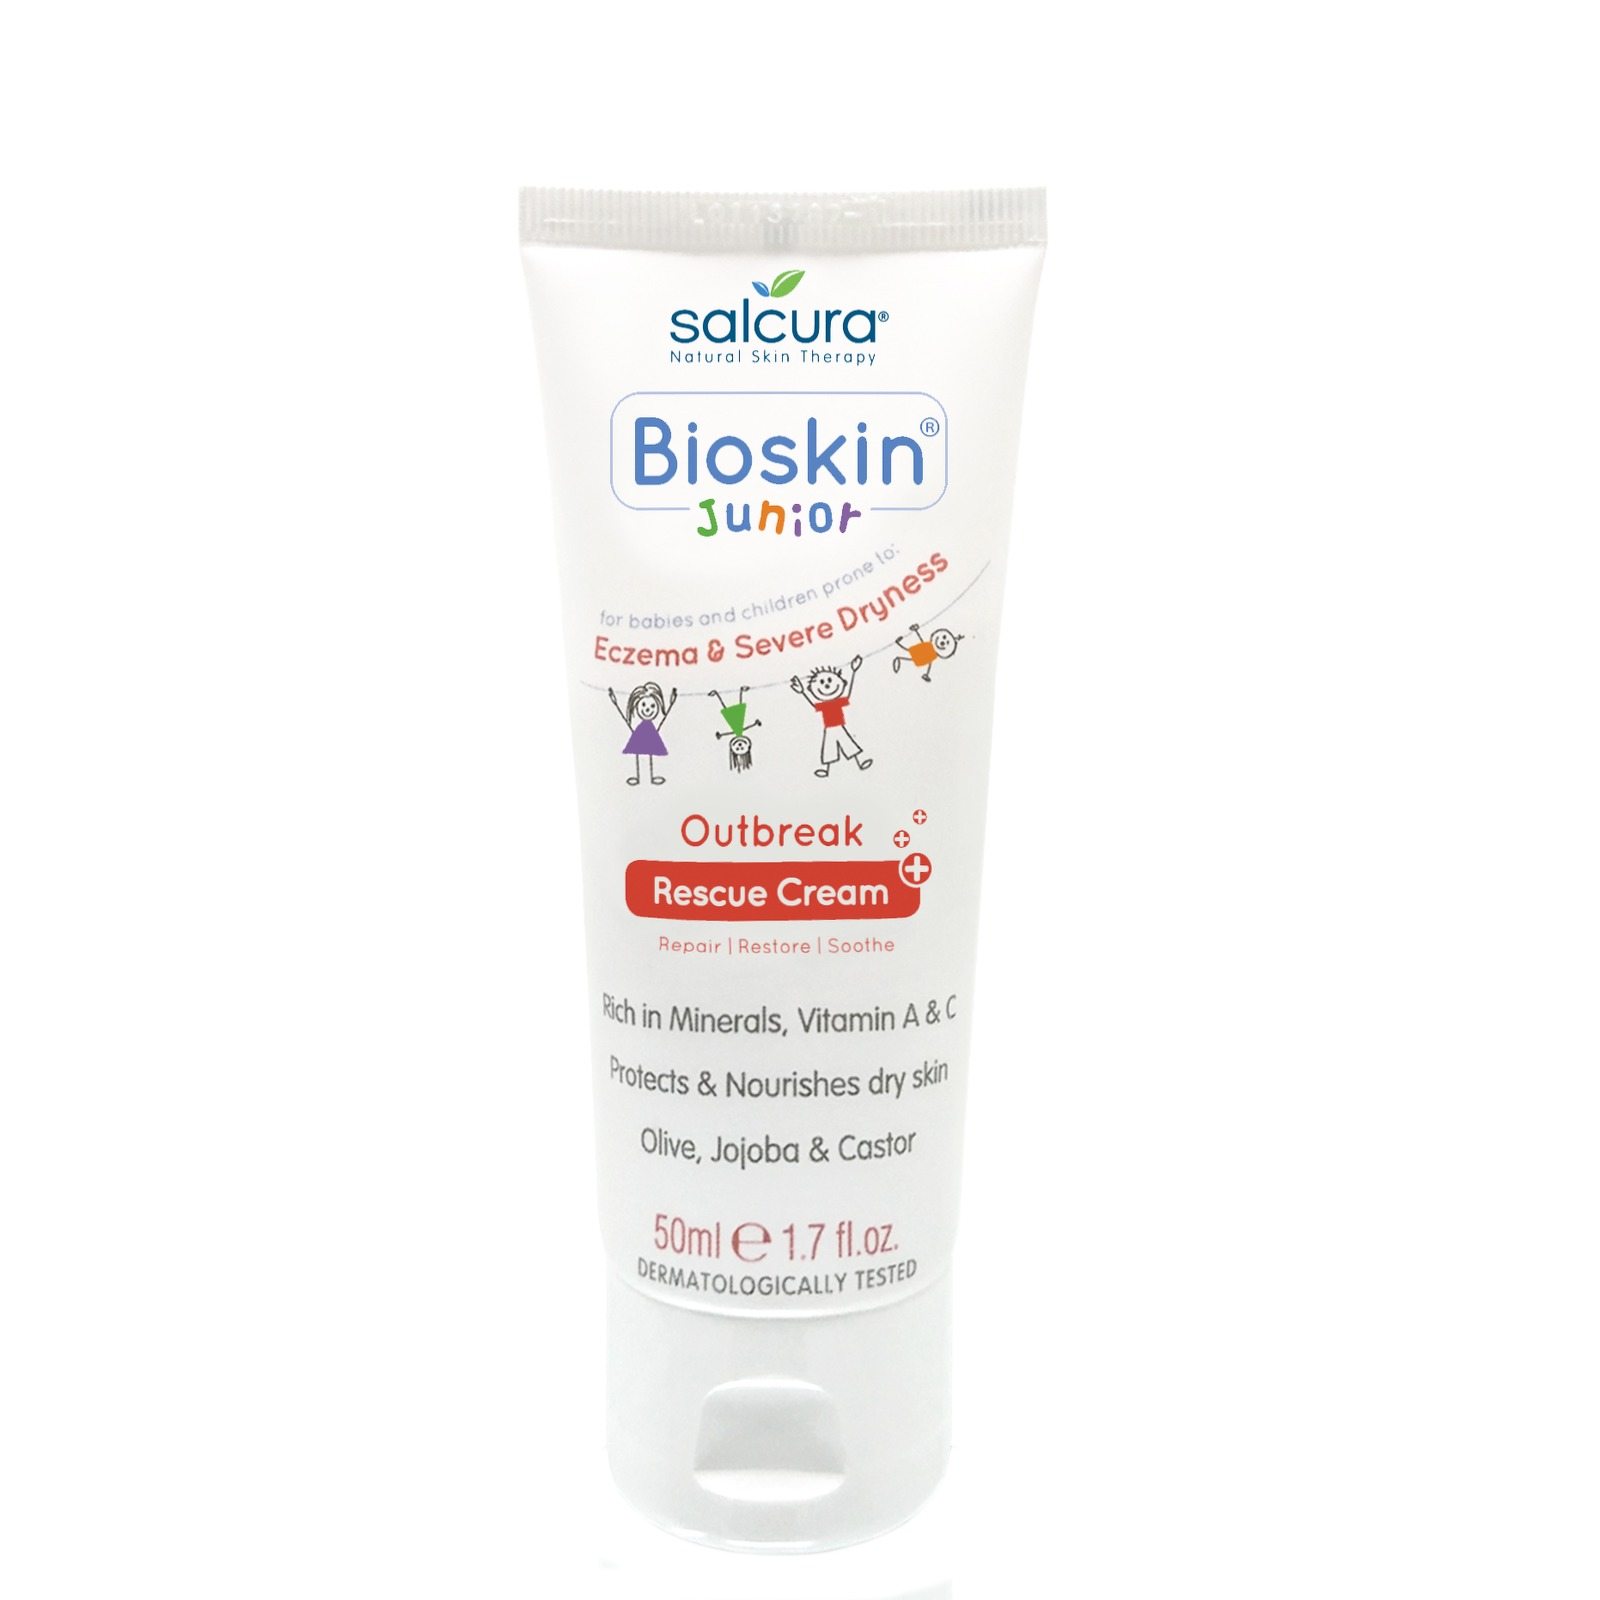 Salcura Bioskin Junior Outbreak Rescue Cream 50ml